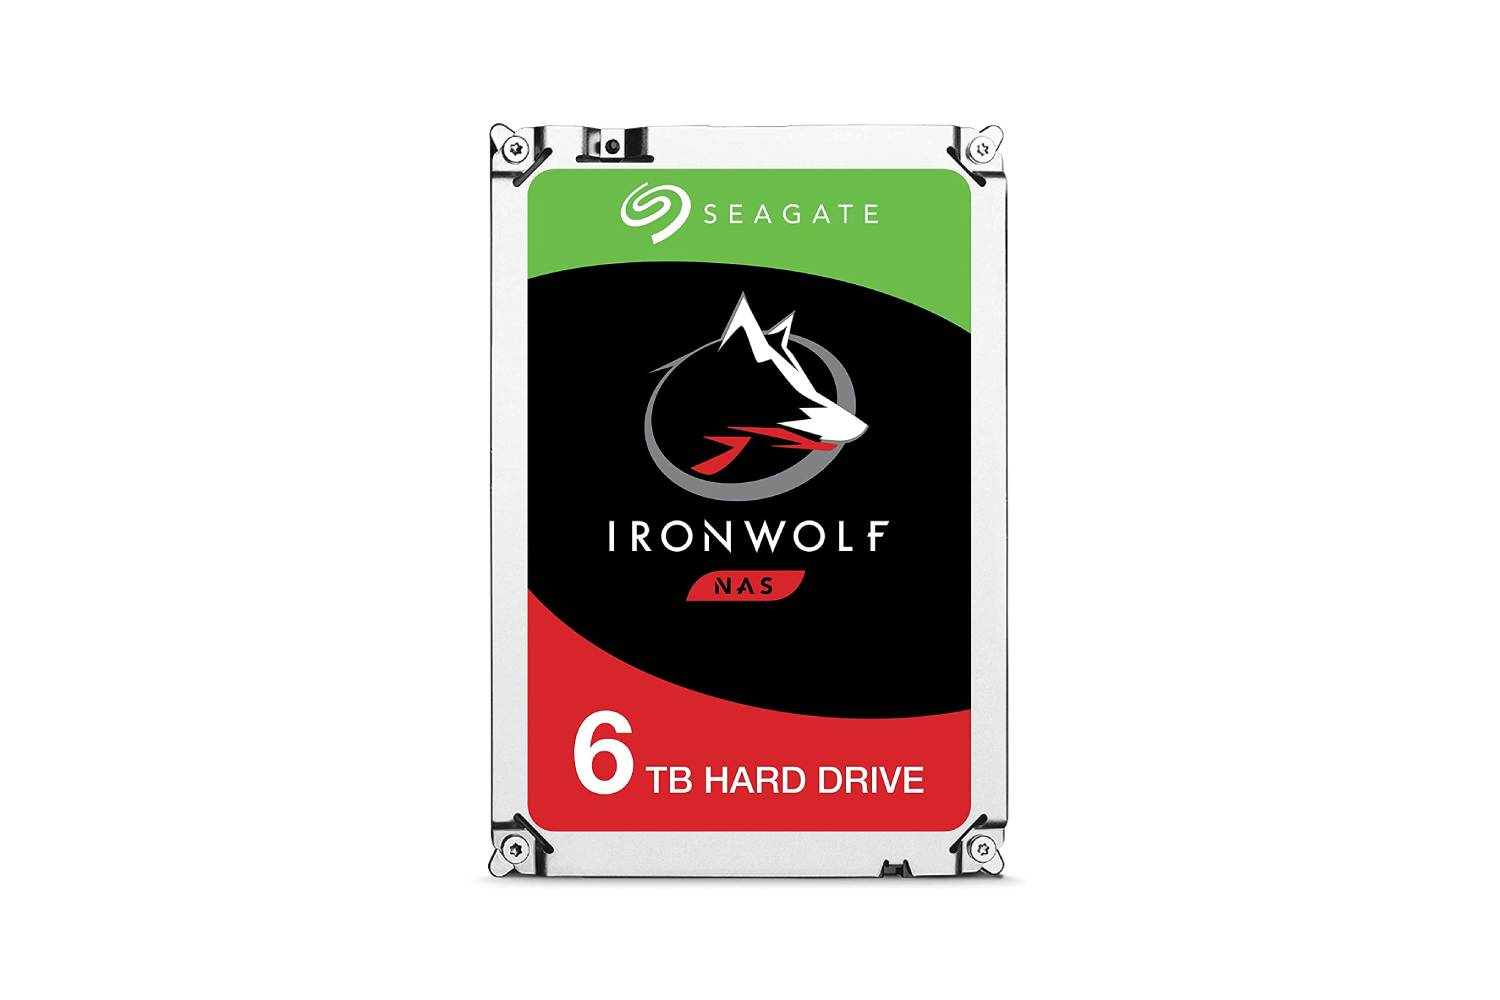 Seagate IronWolf NAS 6TB 6Gb/s 3.5-Inch 7200RPM Internal SATA HDD